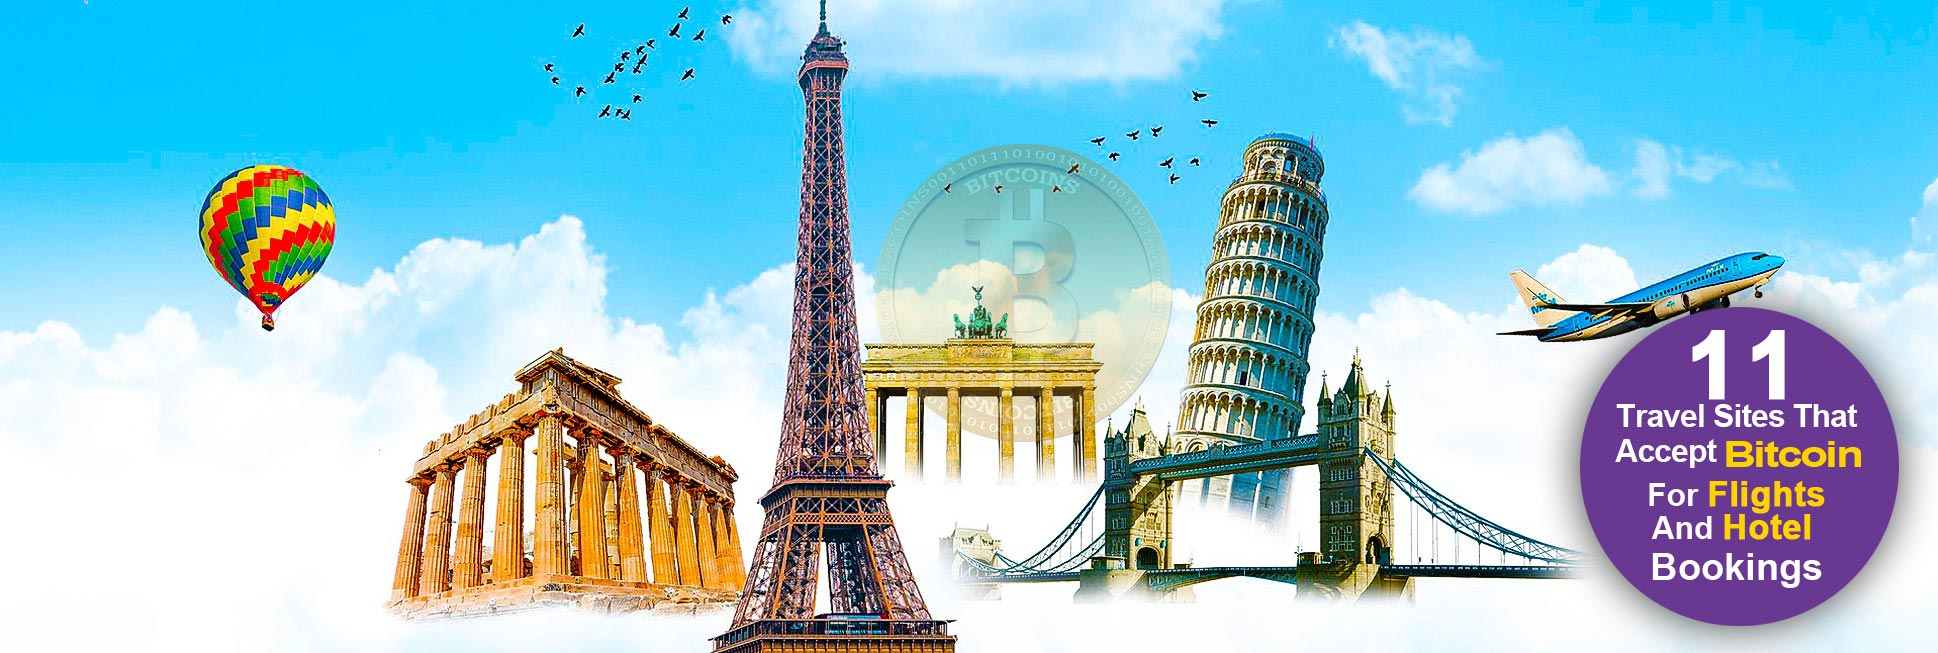 11 Travel Sites That Accept Bitcoins For Flights And Hotels